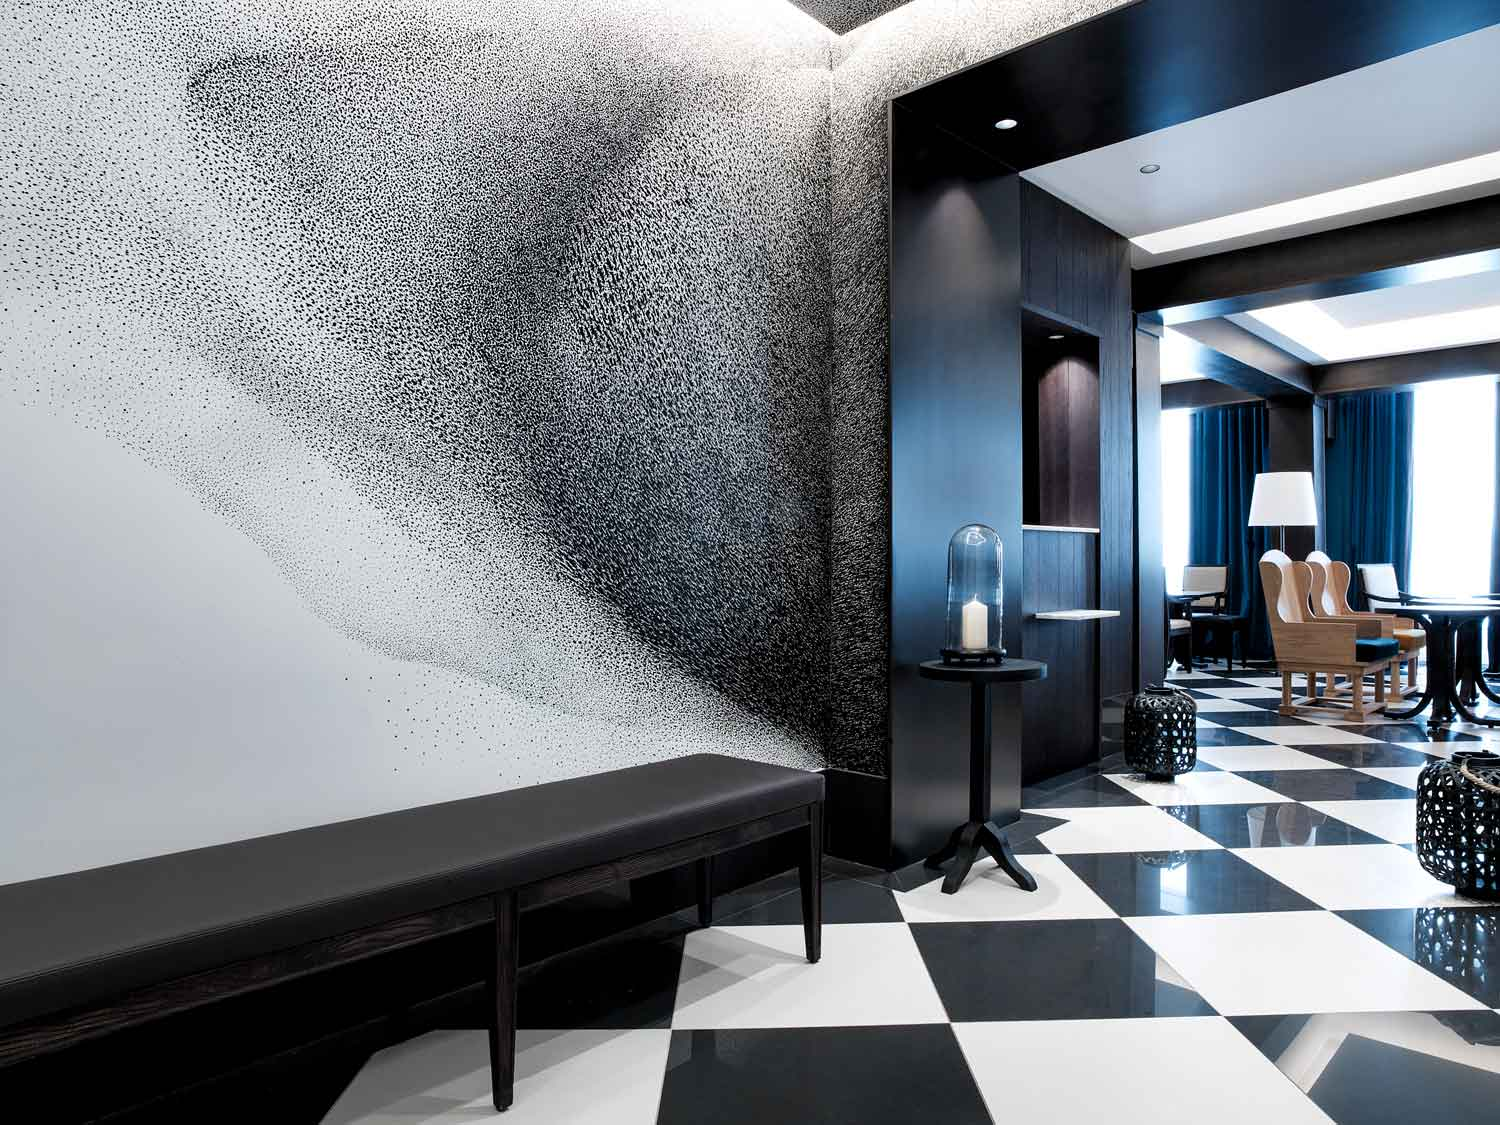 Chess hotel paris by gilles boissier yellowtrace for Hotel design paris 6